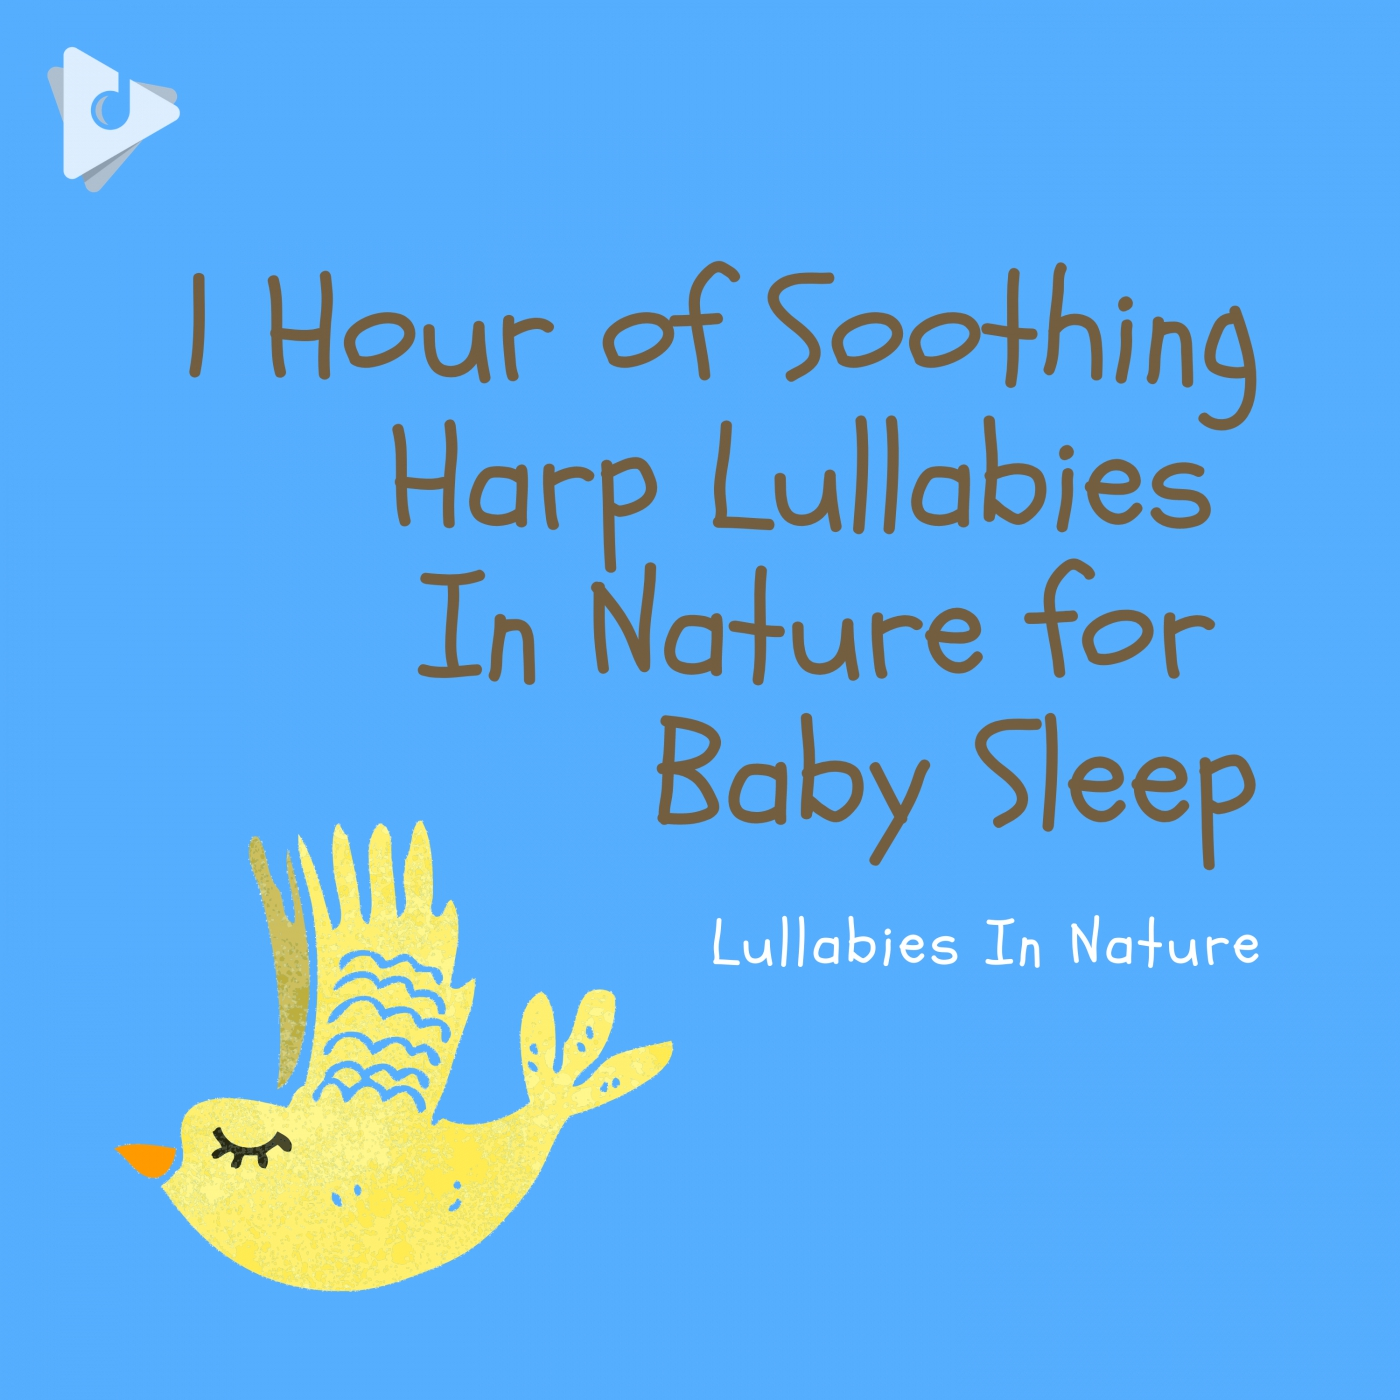 1 Hour of Soothing Harp Lullabies In Nature for Baby Sleep